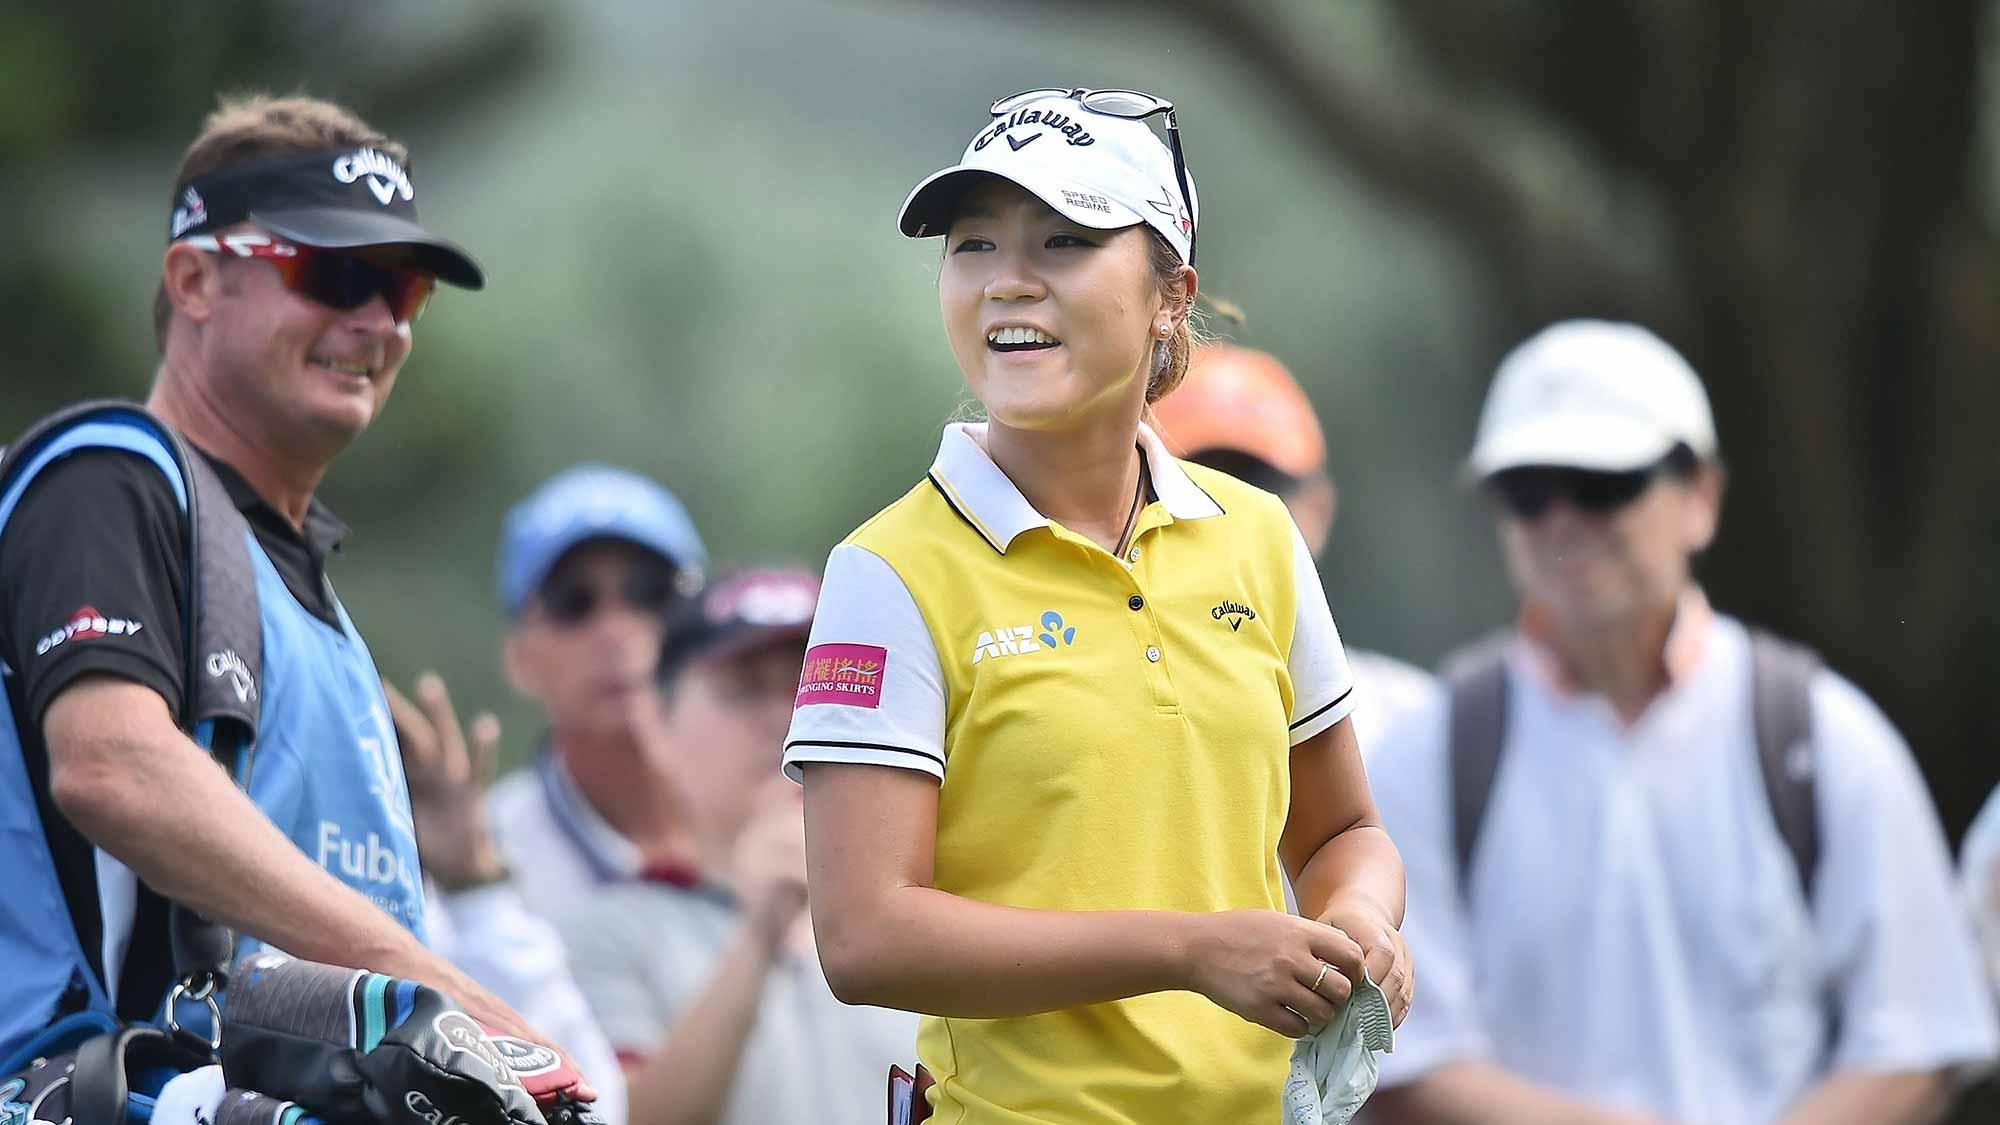 Lydia Ko of New Zealand smiles during the final round of 2015 Fubon LPGA Taiwan Championship on October 25, 2015 in Miramar Resort & Country Club